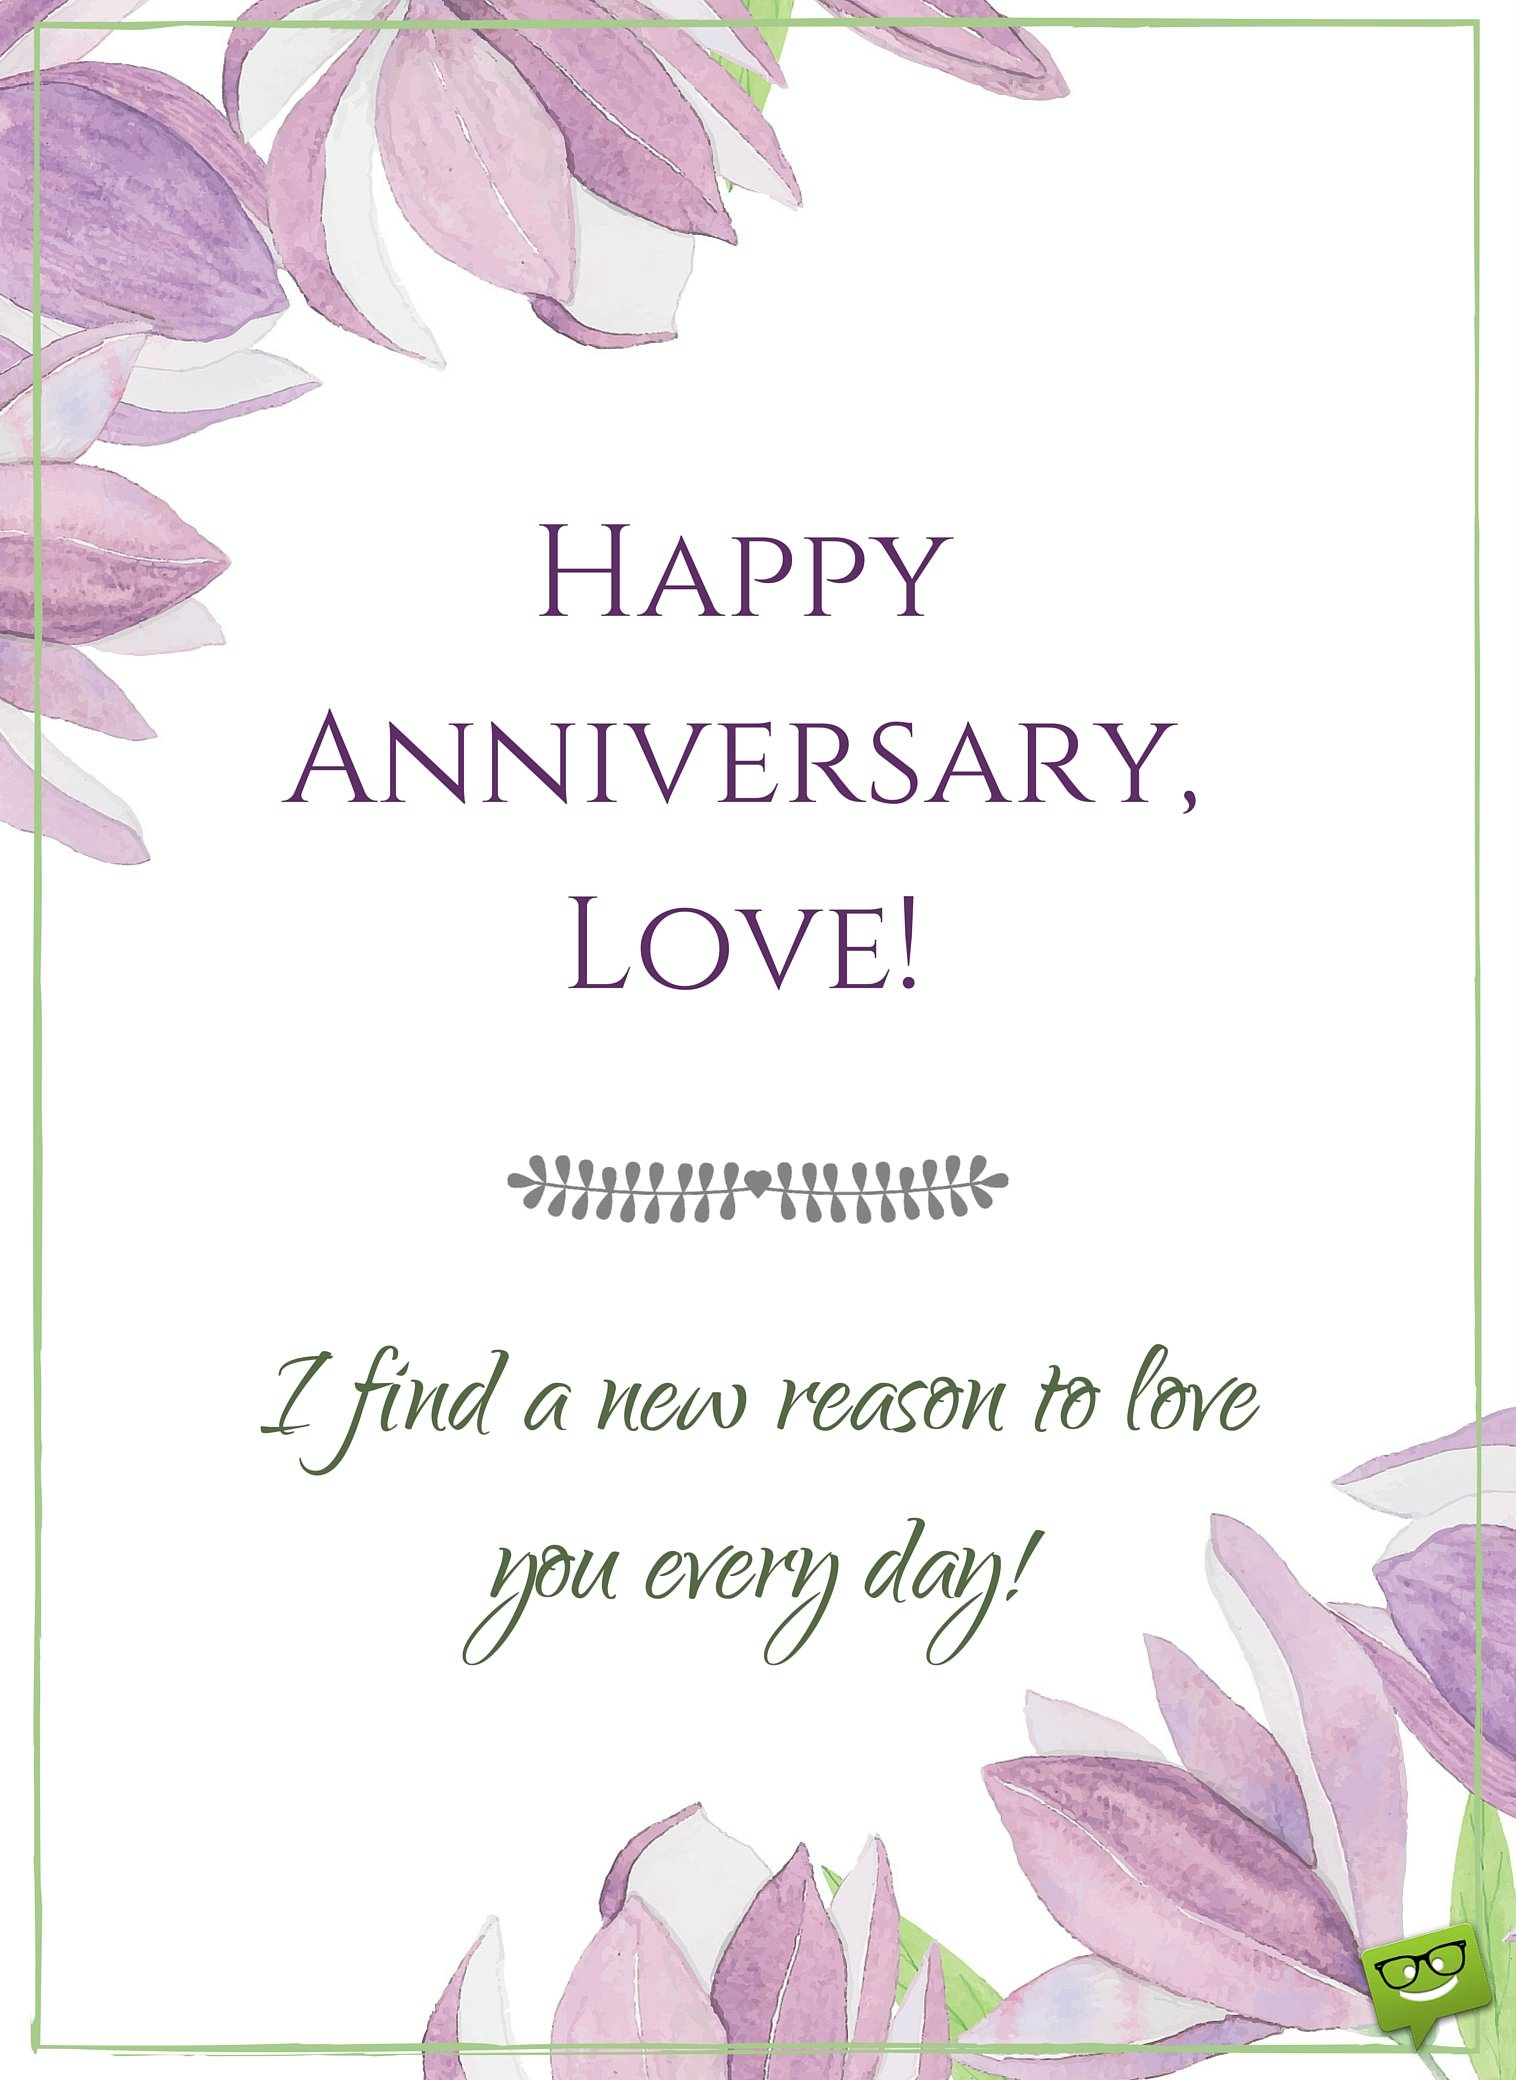 Romantic Funny Anniversary Wishes For Your Significant Other